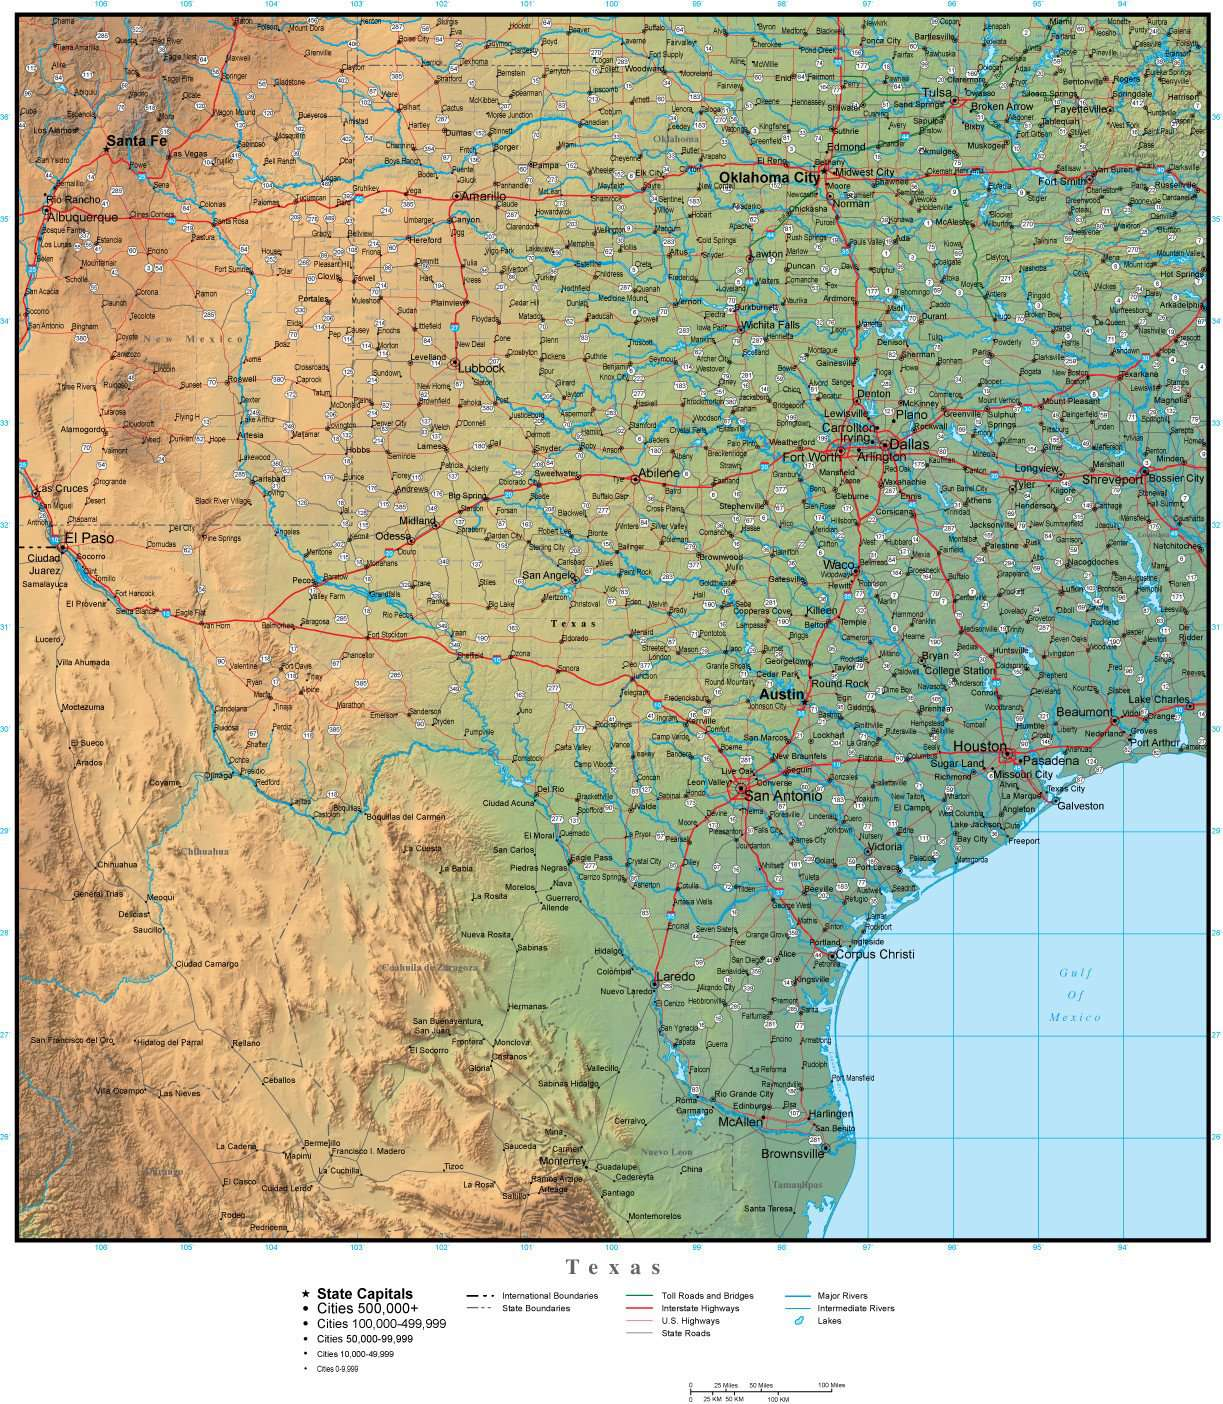 Map Of Texas 99.Texas Map Plus Terrain With Cities Roads And Water Features